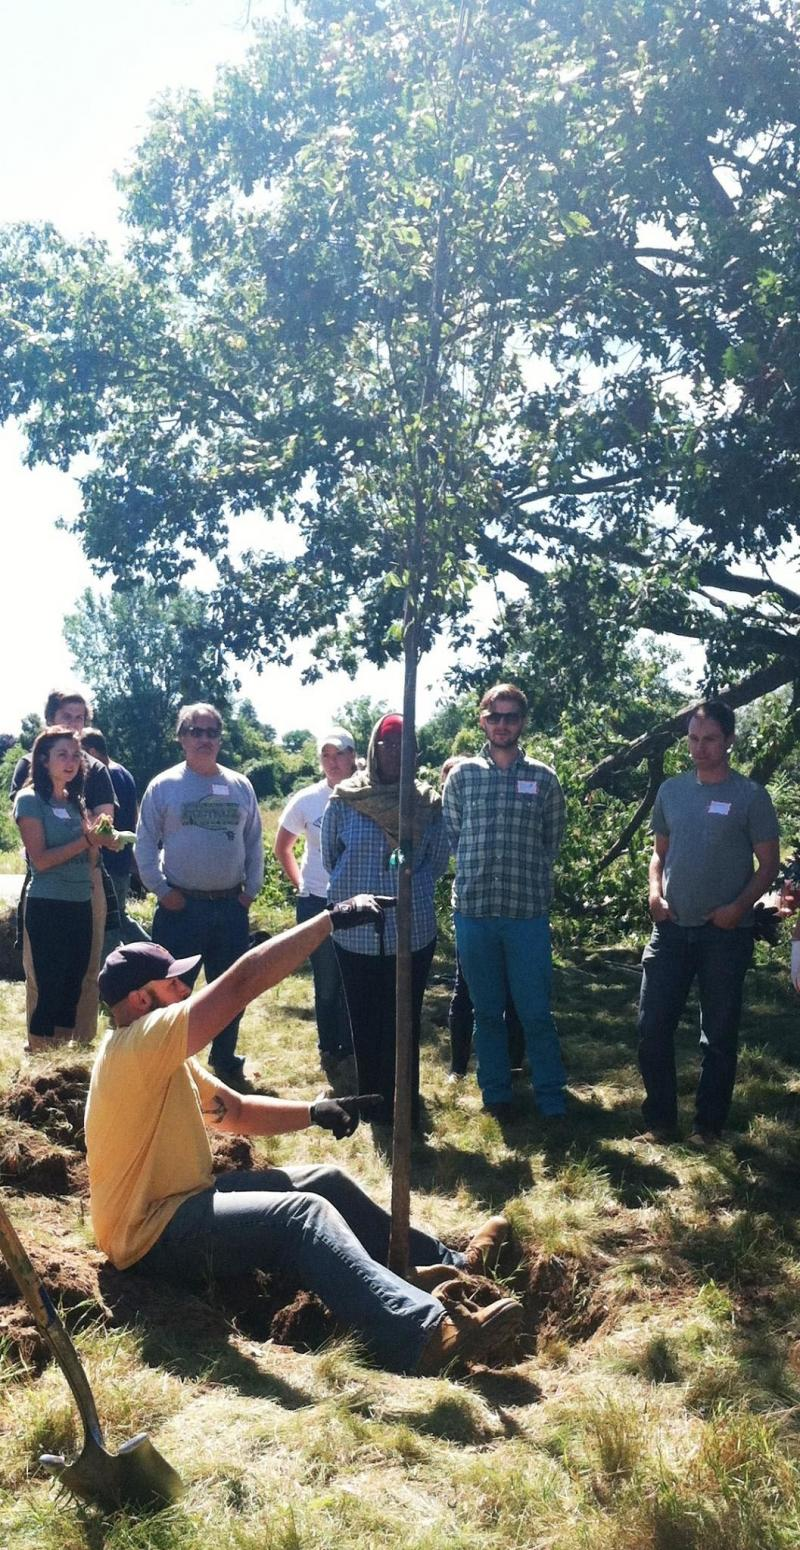 Tree planting demonstration led by the Greening of Detroit